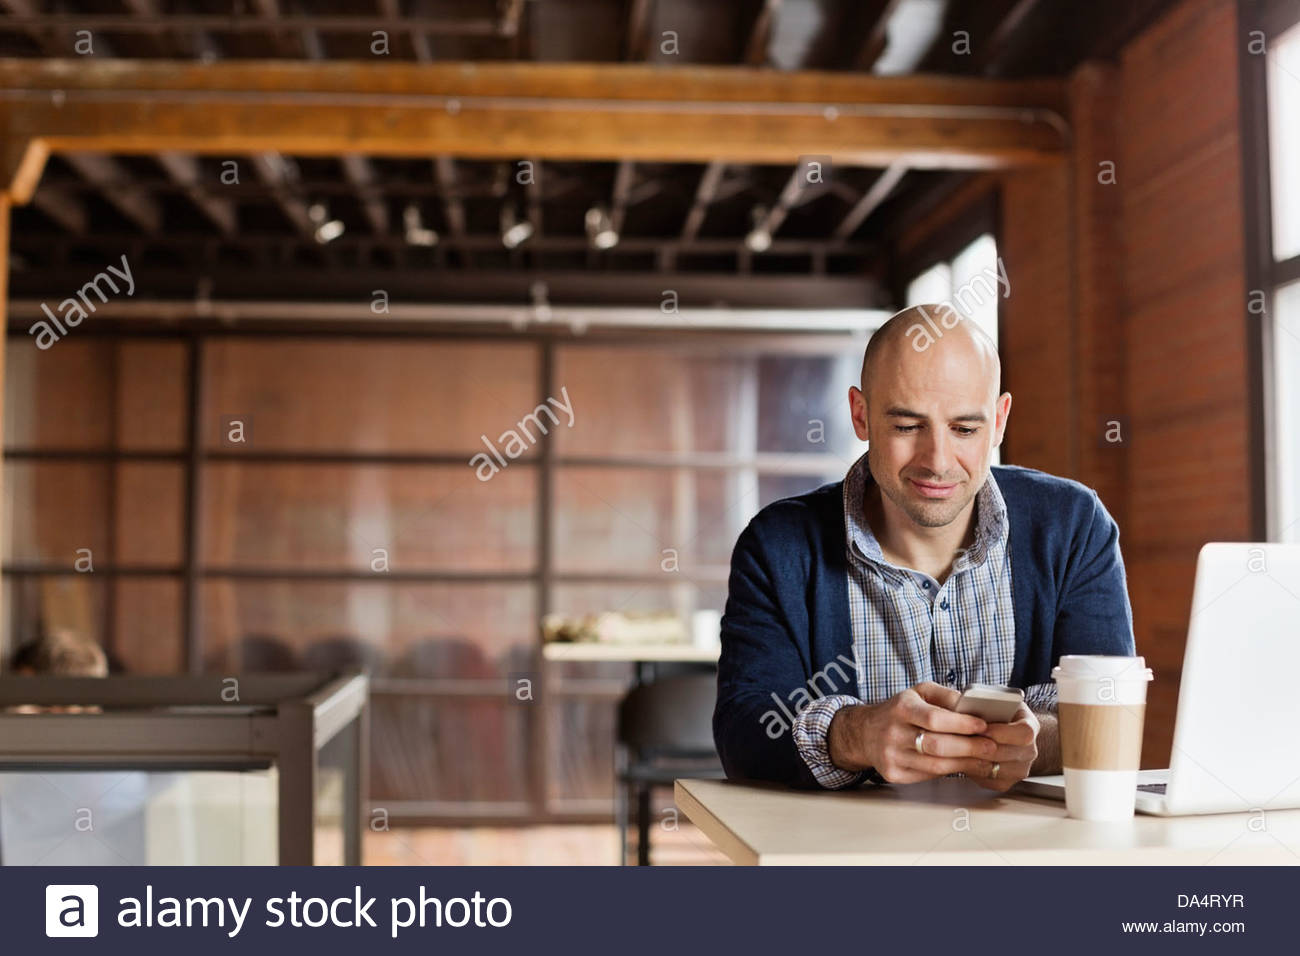 Entrepreneur working in creative office space - Stock Image